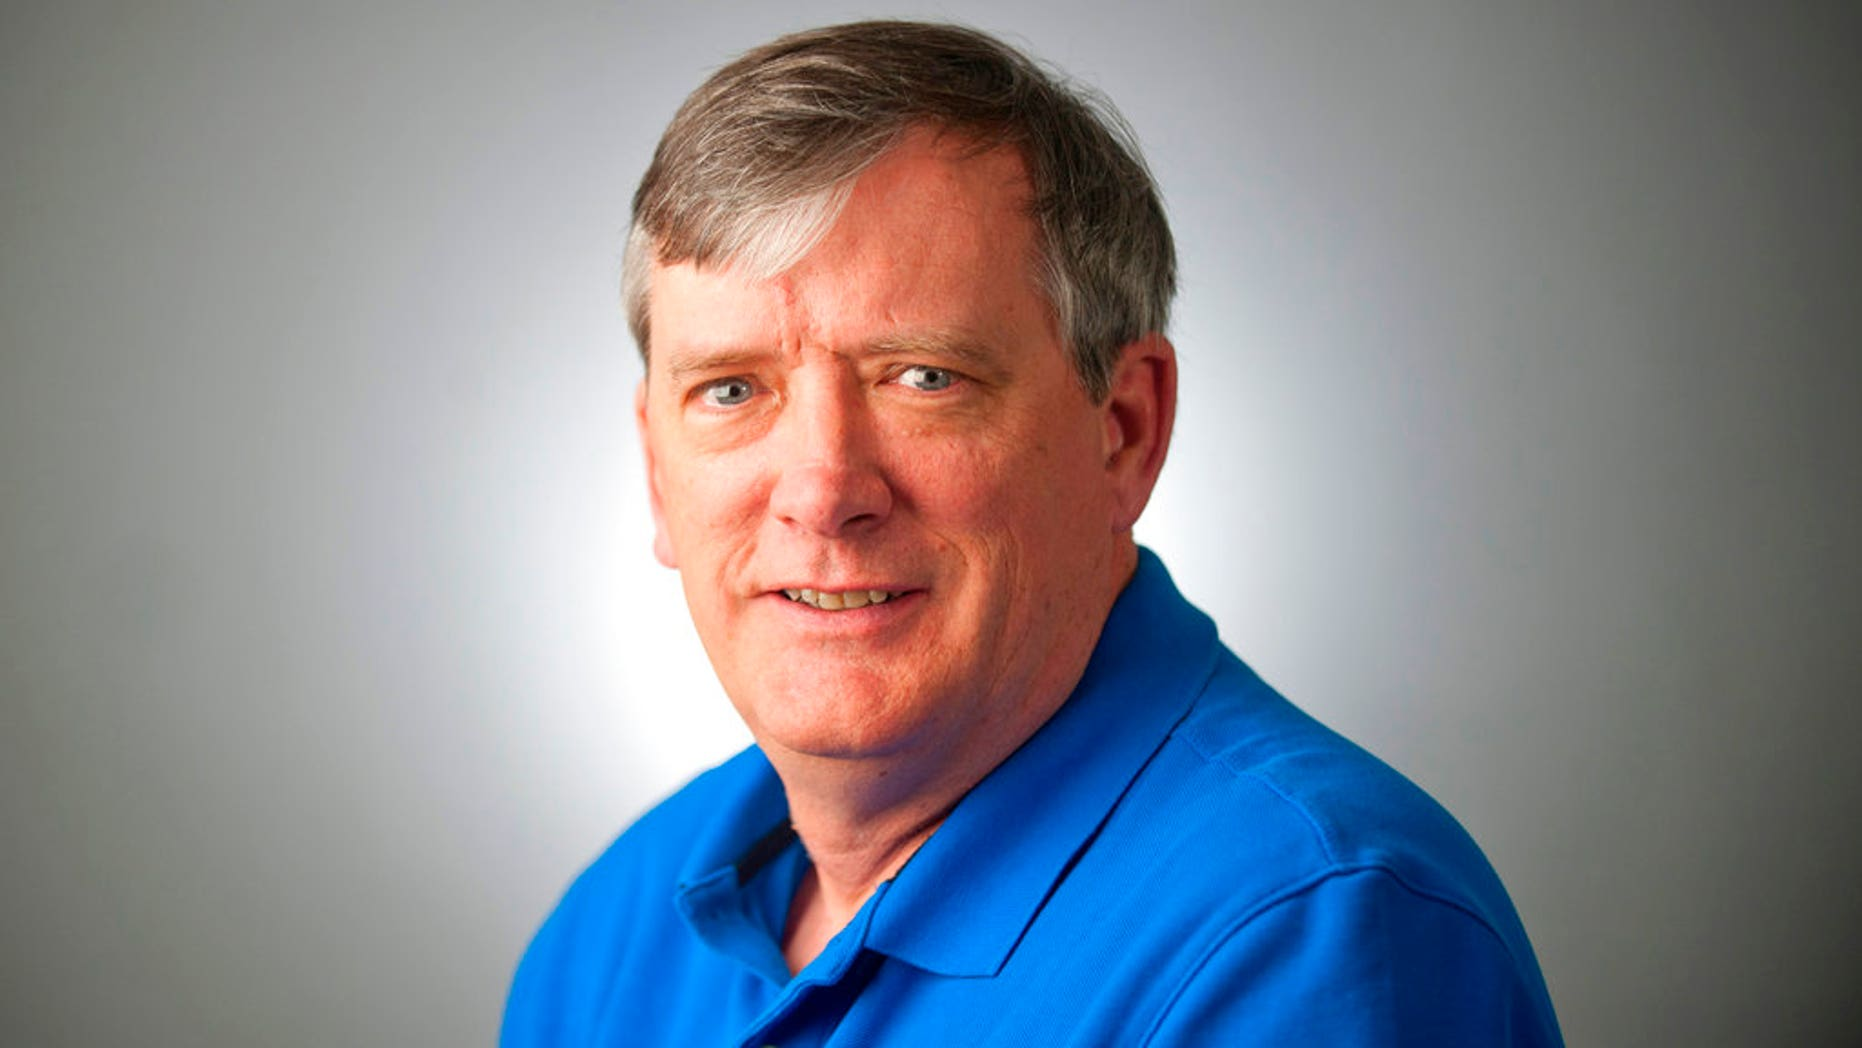 FILE - This undated file photo shows reporter John McNamara of the Capital Gazette, who was one of the victims when an active shooter targeted the newsroom, Thursday, June 28, 2018 in Annapolis, Md. The widow of the slain Maryland newspaper reporter, McNamara, has spread his ashes at Nationals Park. The Baltimore Sun reported that Andrea Chamblee placed the ashes of McNamara in a planter of begonias at the park Saturday, Sept. 1, 2018. (The Baltimore Sun via AP, File)